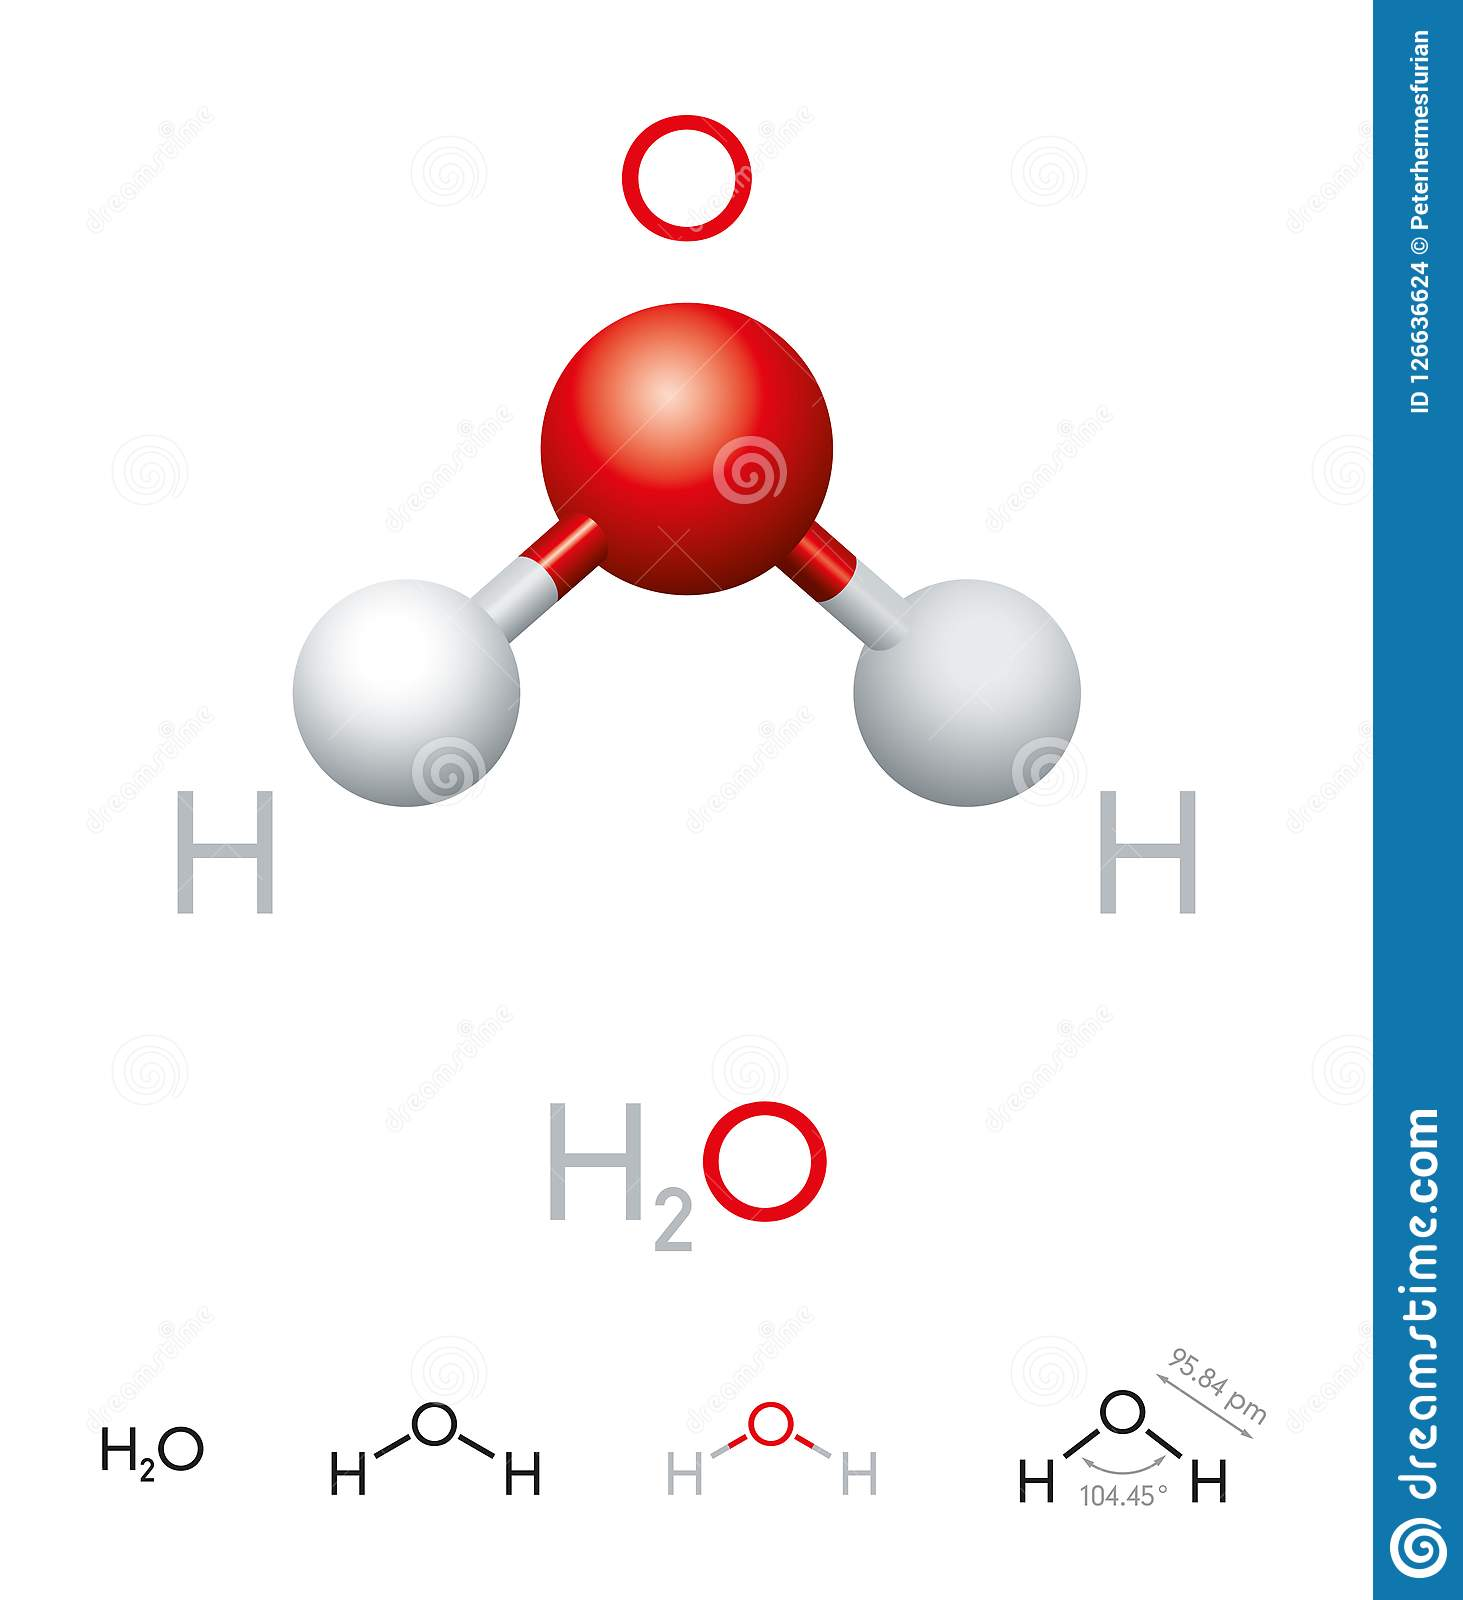 H2O Water Molecule Model And Chemical Formula Stock Vector ... H2o Compound